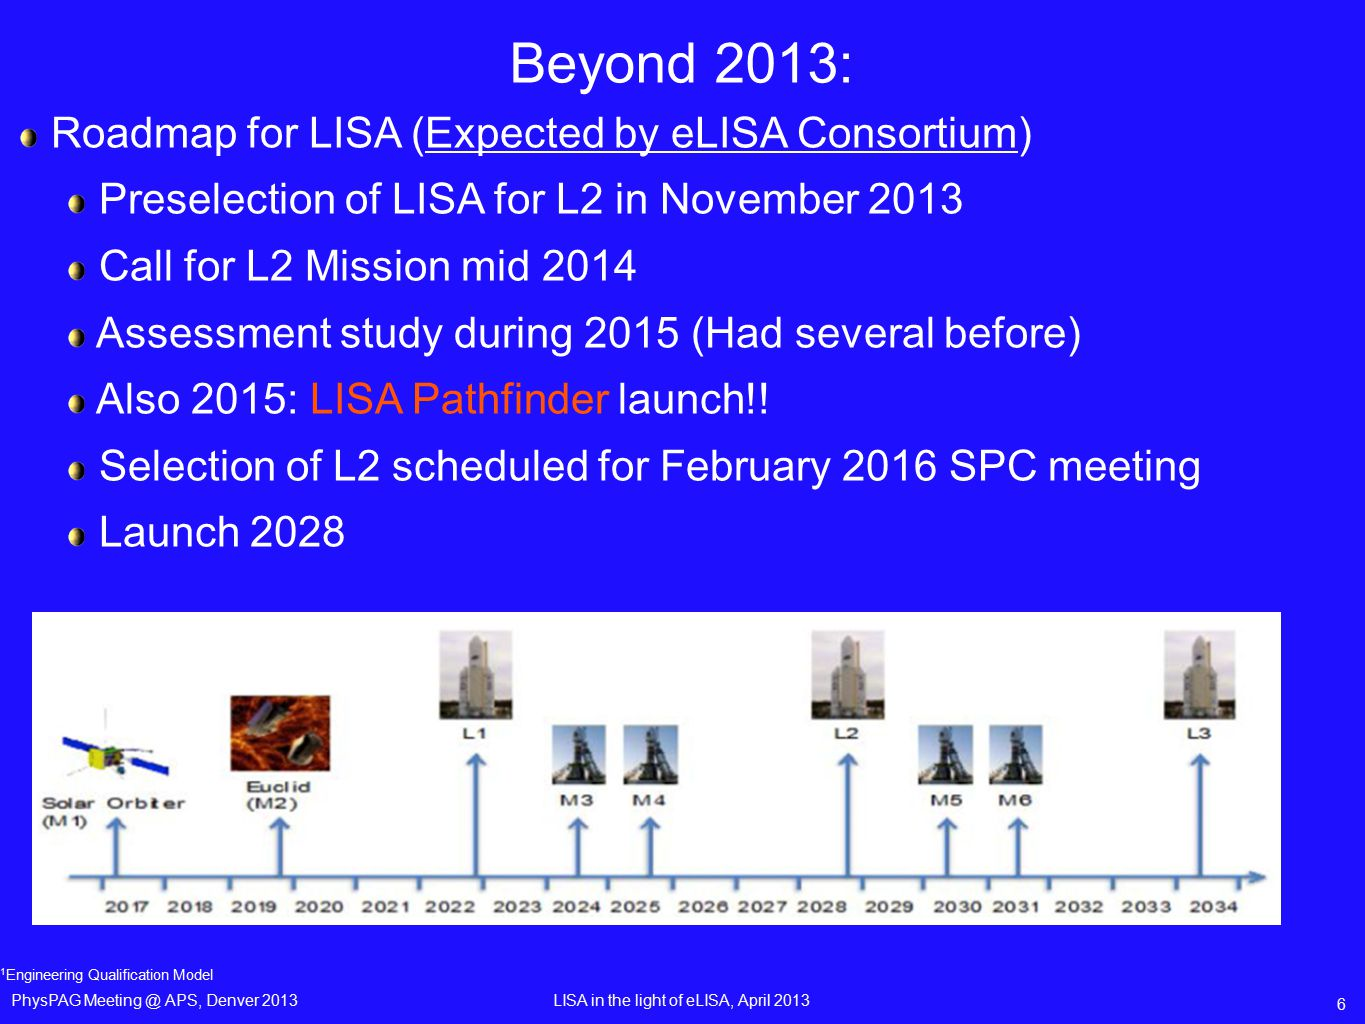 LISA in the light of eLISA, April 2013PhysPAG Meeting @ APS, Denver 2013 6 Beyond 2013: Roadmap for LISA (Expected by eLISA Consortium) Preselection of LISA for L2 in November 2013 Call for L2 Mission mid 2014 Assessment study during 2015 (Had several before) Also 2015: LISA Pathfinder launch!.